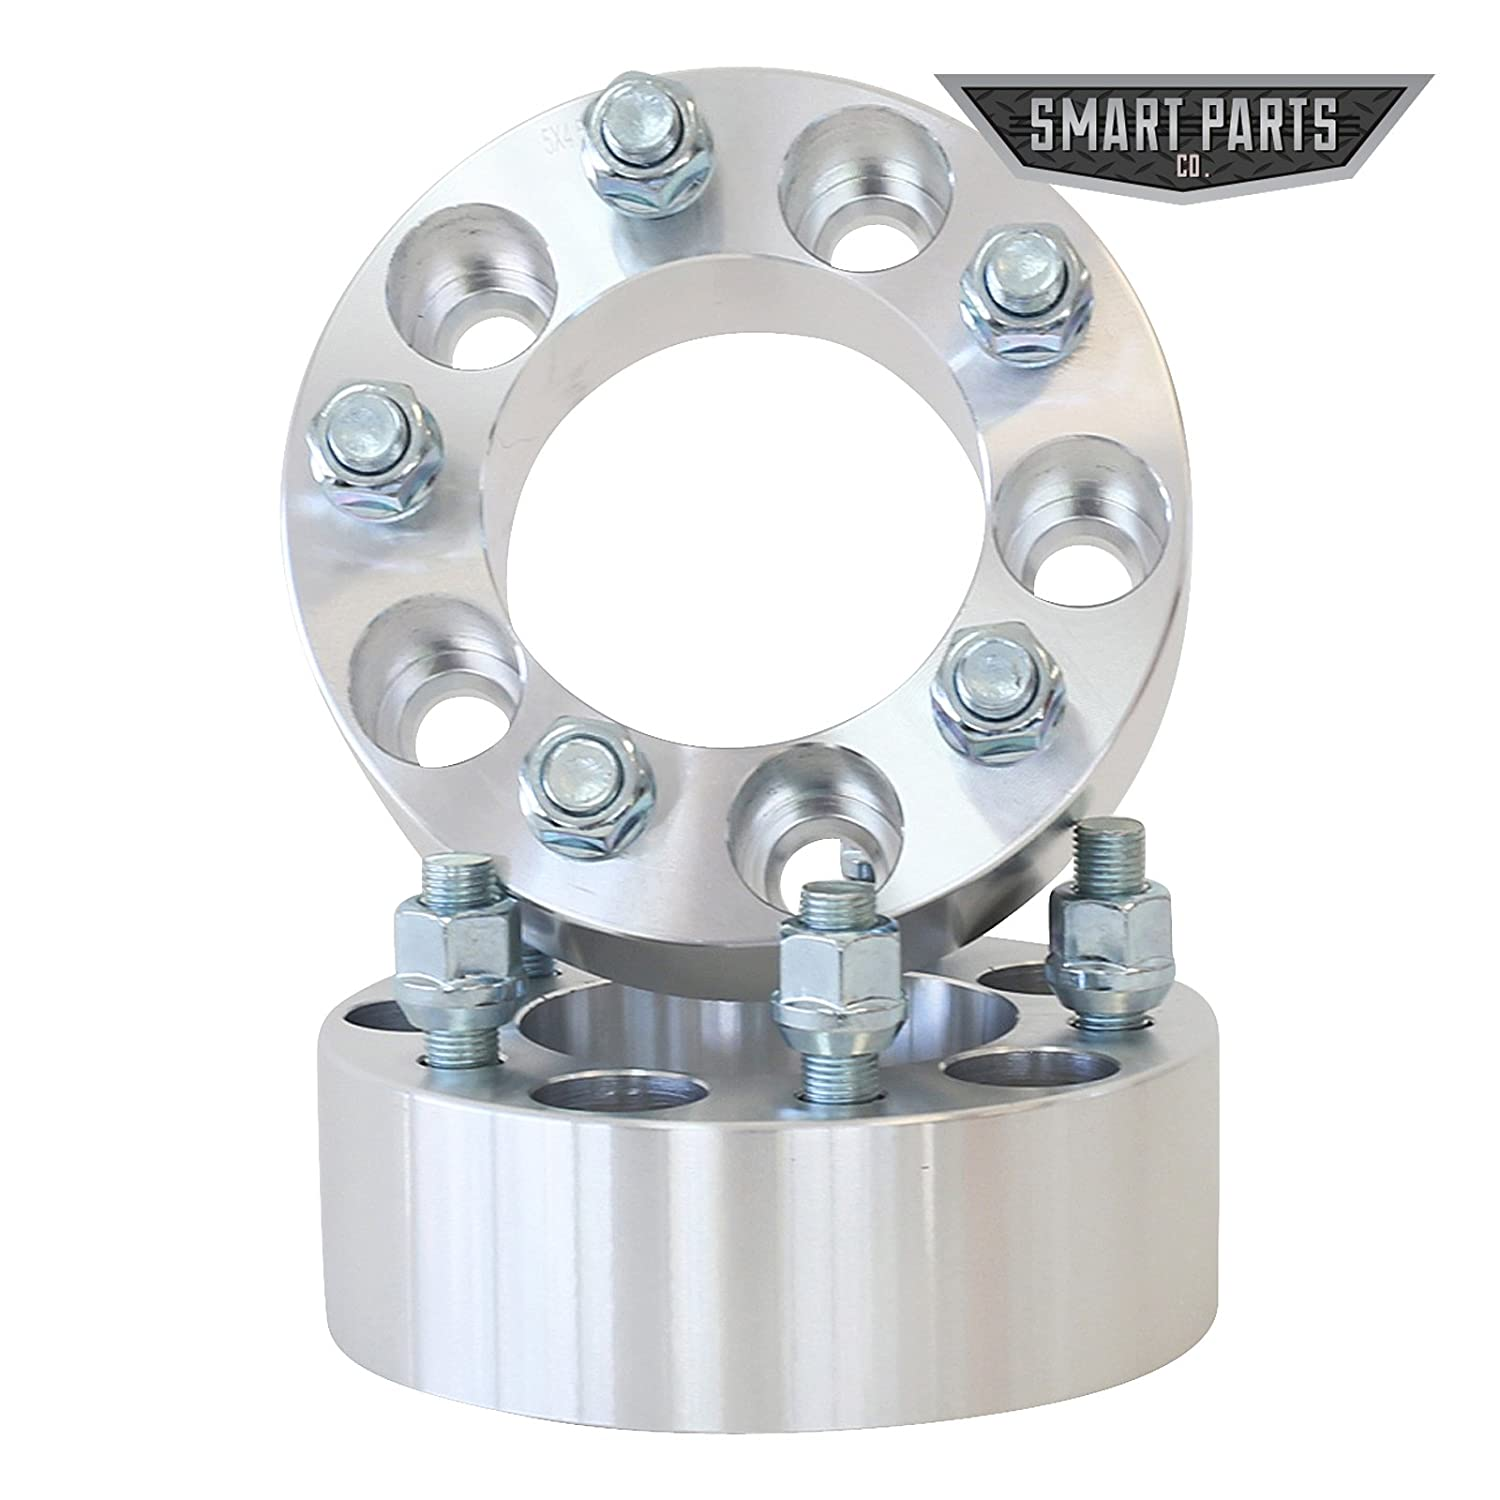 ATV Engineering 4 Qty Wheel Spacers Adapters 4 fits All 5x4.5 5x114.3 RH Threads 2 inch per Side Vehicle to 5x4.5 Wheel Bolt Patterns with 1//2